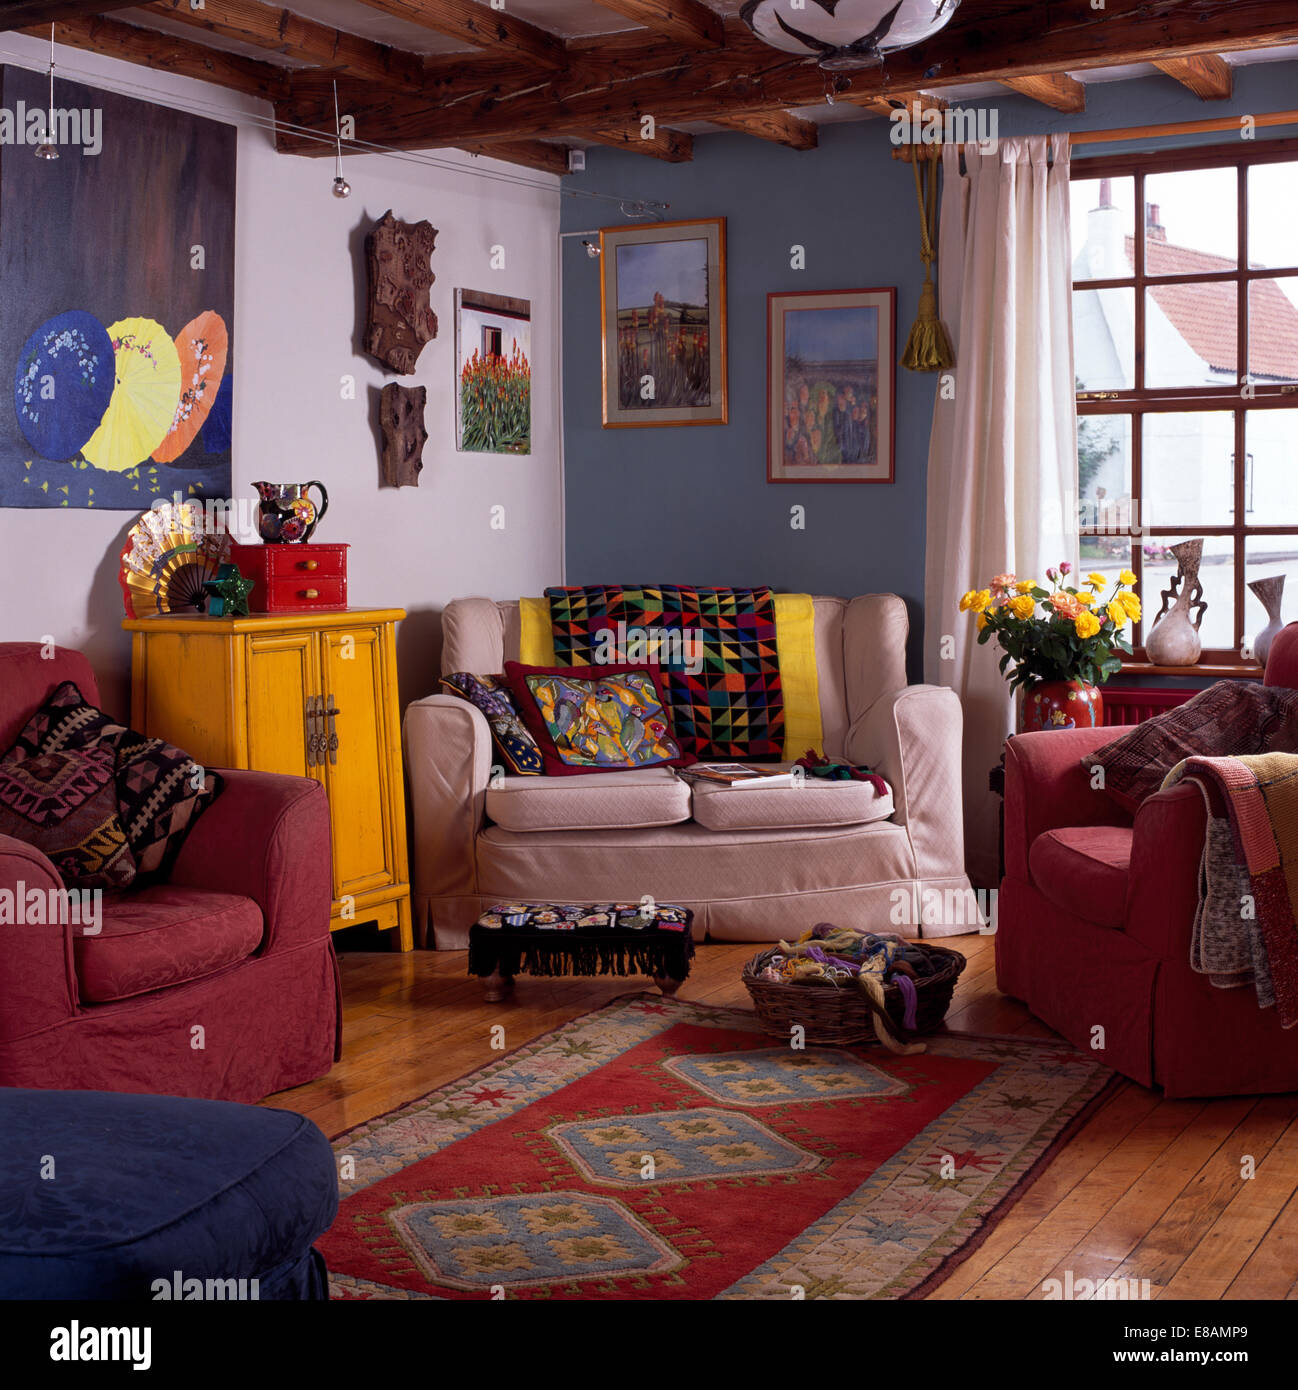 Patterned Rug In Blue And White Cottage Living Room With Colourful Throws  And Cushions On The Sofa And Armchairs